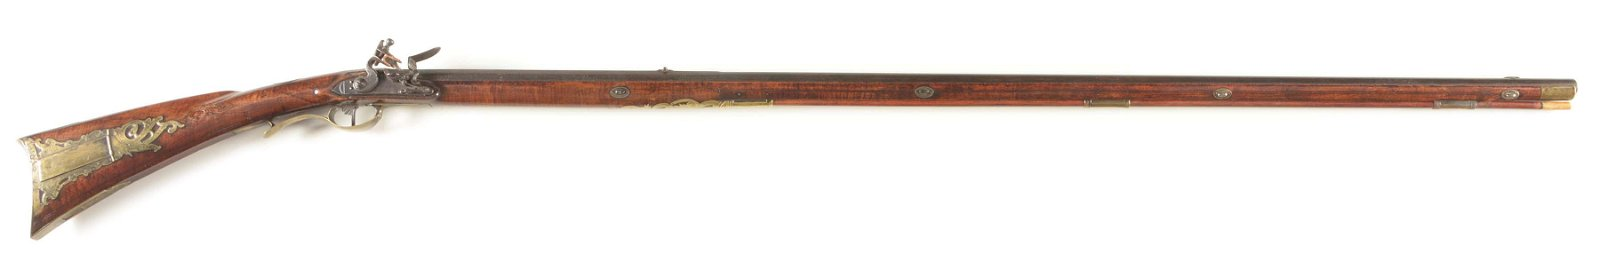 (A) RELIEF CARVED AND ORNATE FLINTLOCK KENTUCKY RIFLE